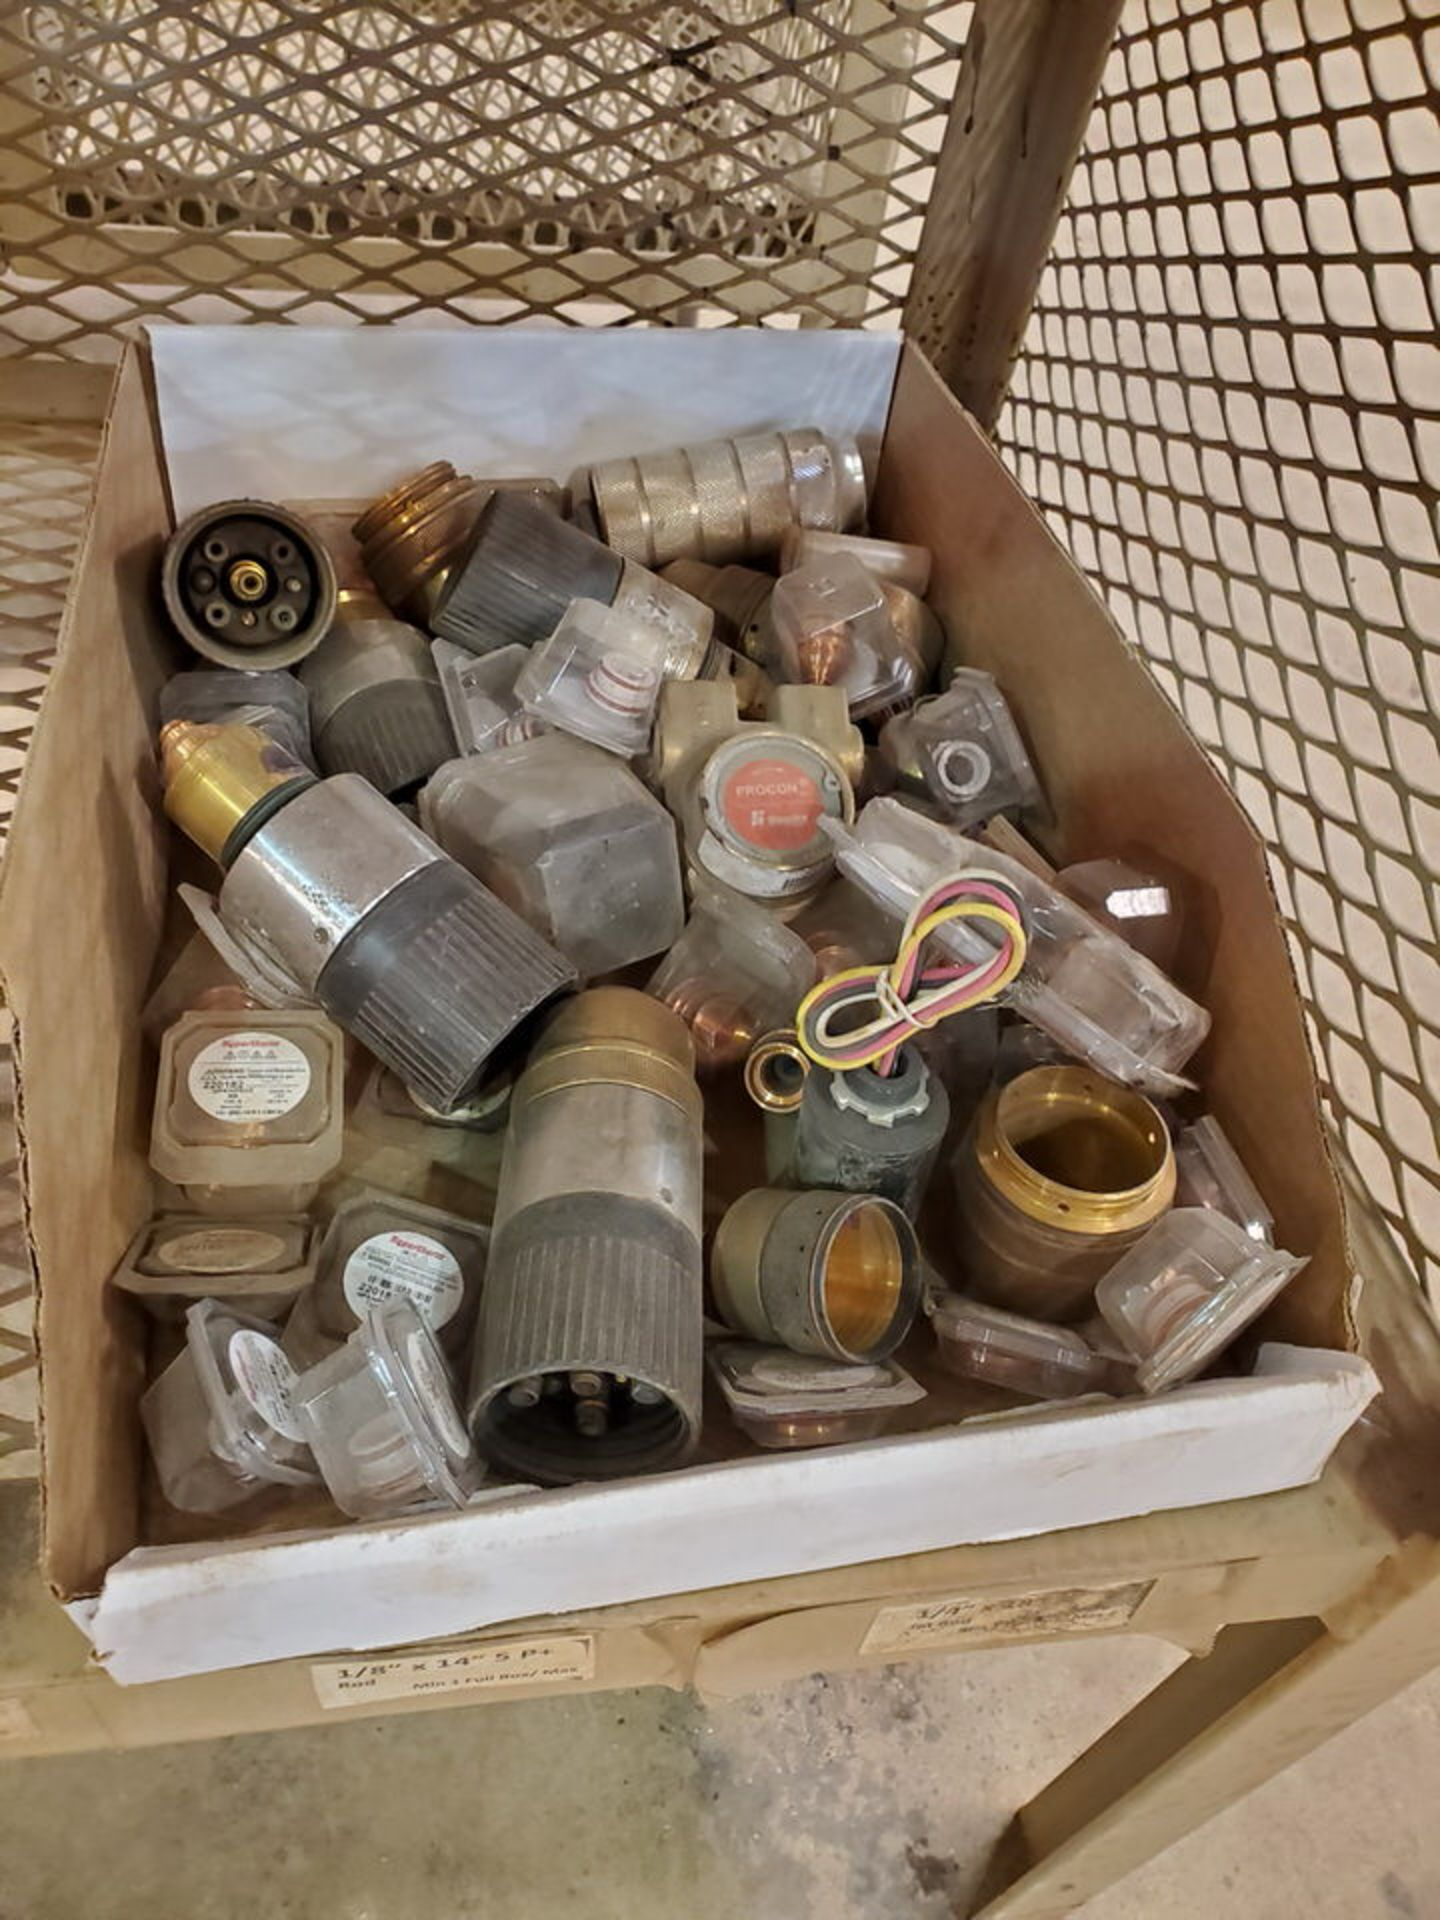 Assorted Welding Material To Include But Not Limited To: Electrodes, Tips, Copper Fittings, etc. ( - Image 3 of 7